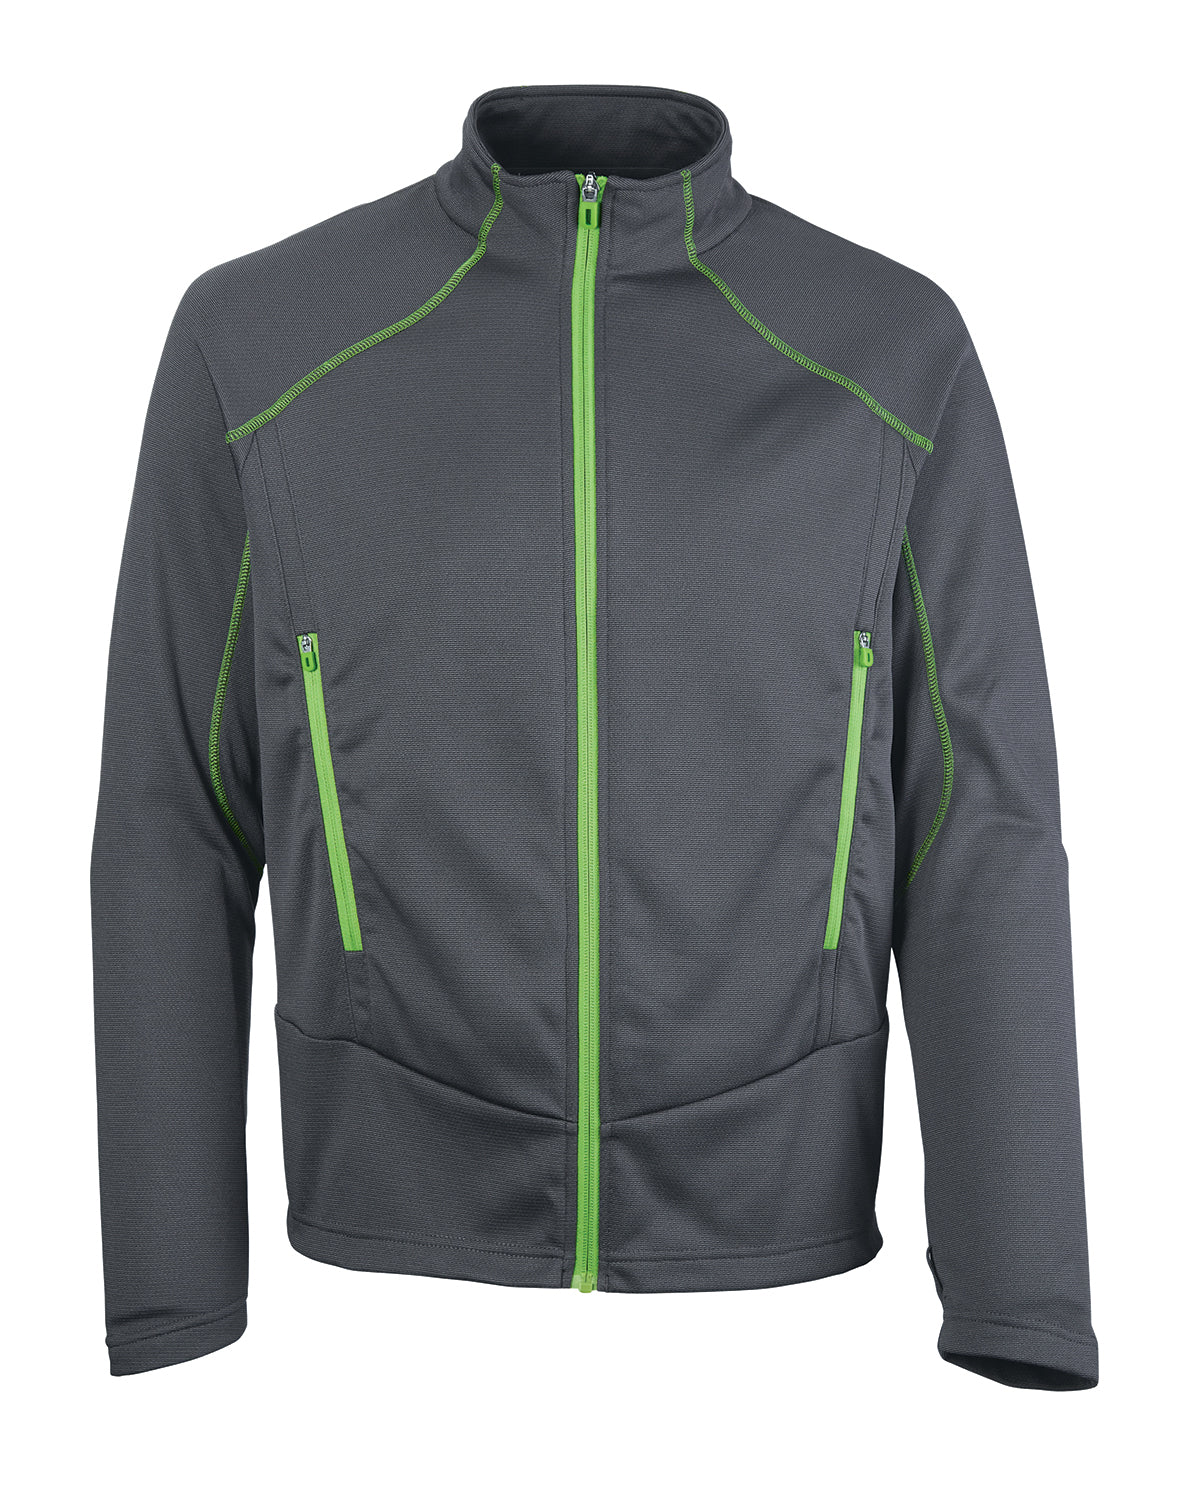 Ash City - North End Men's Cadence Interactive Two-Tone Brush Back Jacket